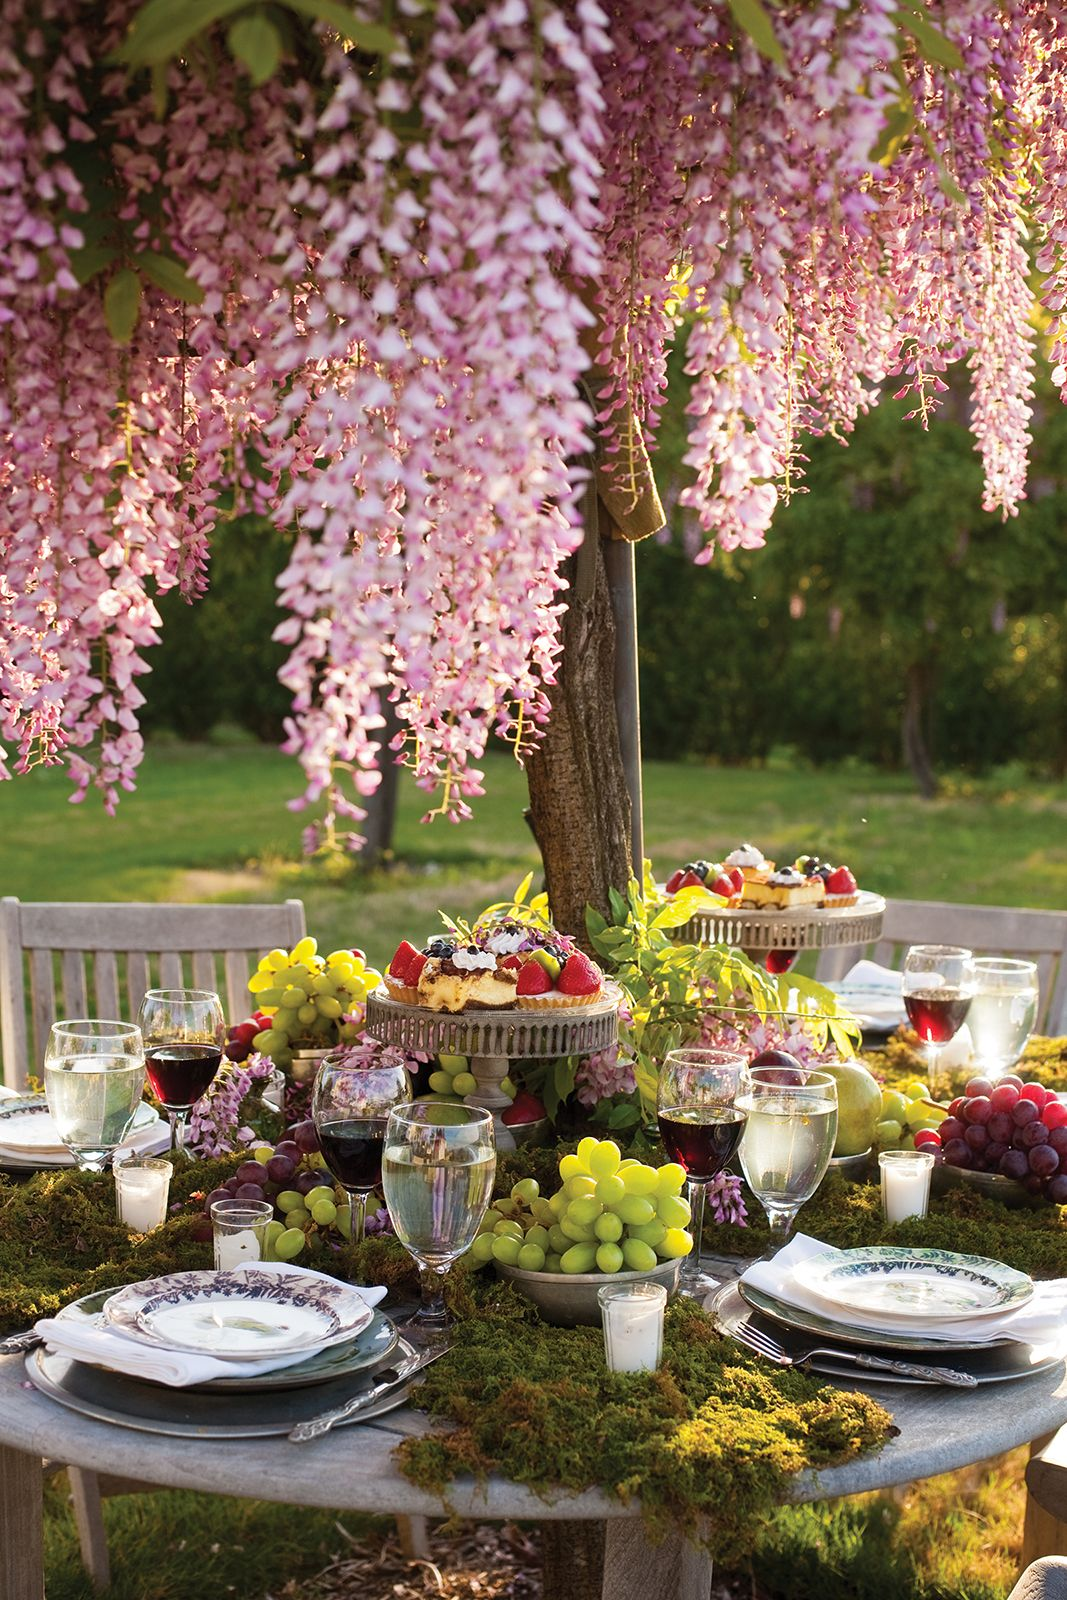 Sensational 26 Gorgeous Tablescapes For Outdoor Entertaining Summer Beutiful Home Inspiration Ommitmahrainfo